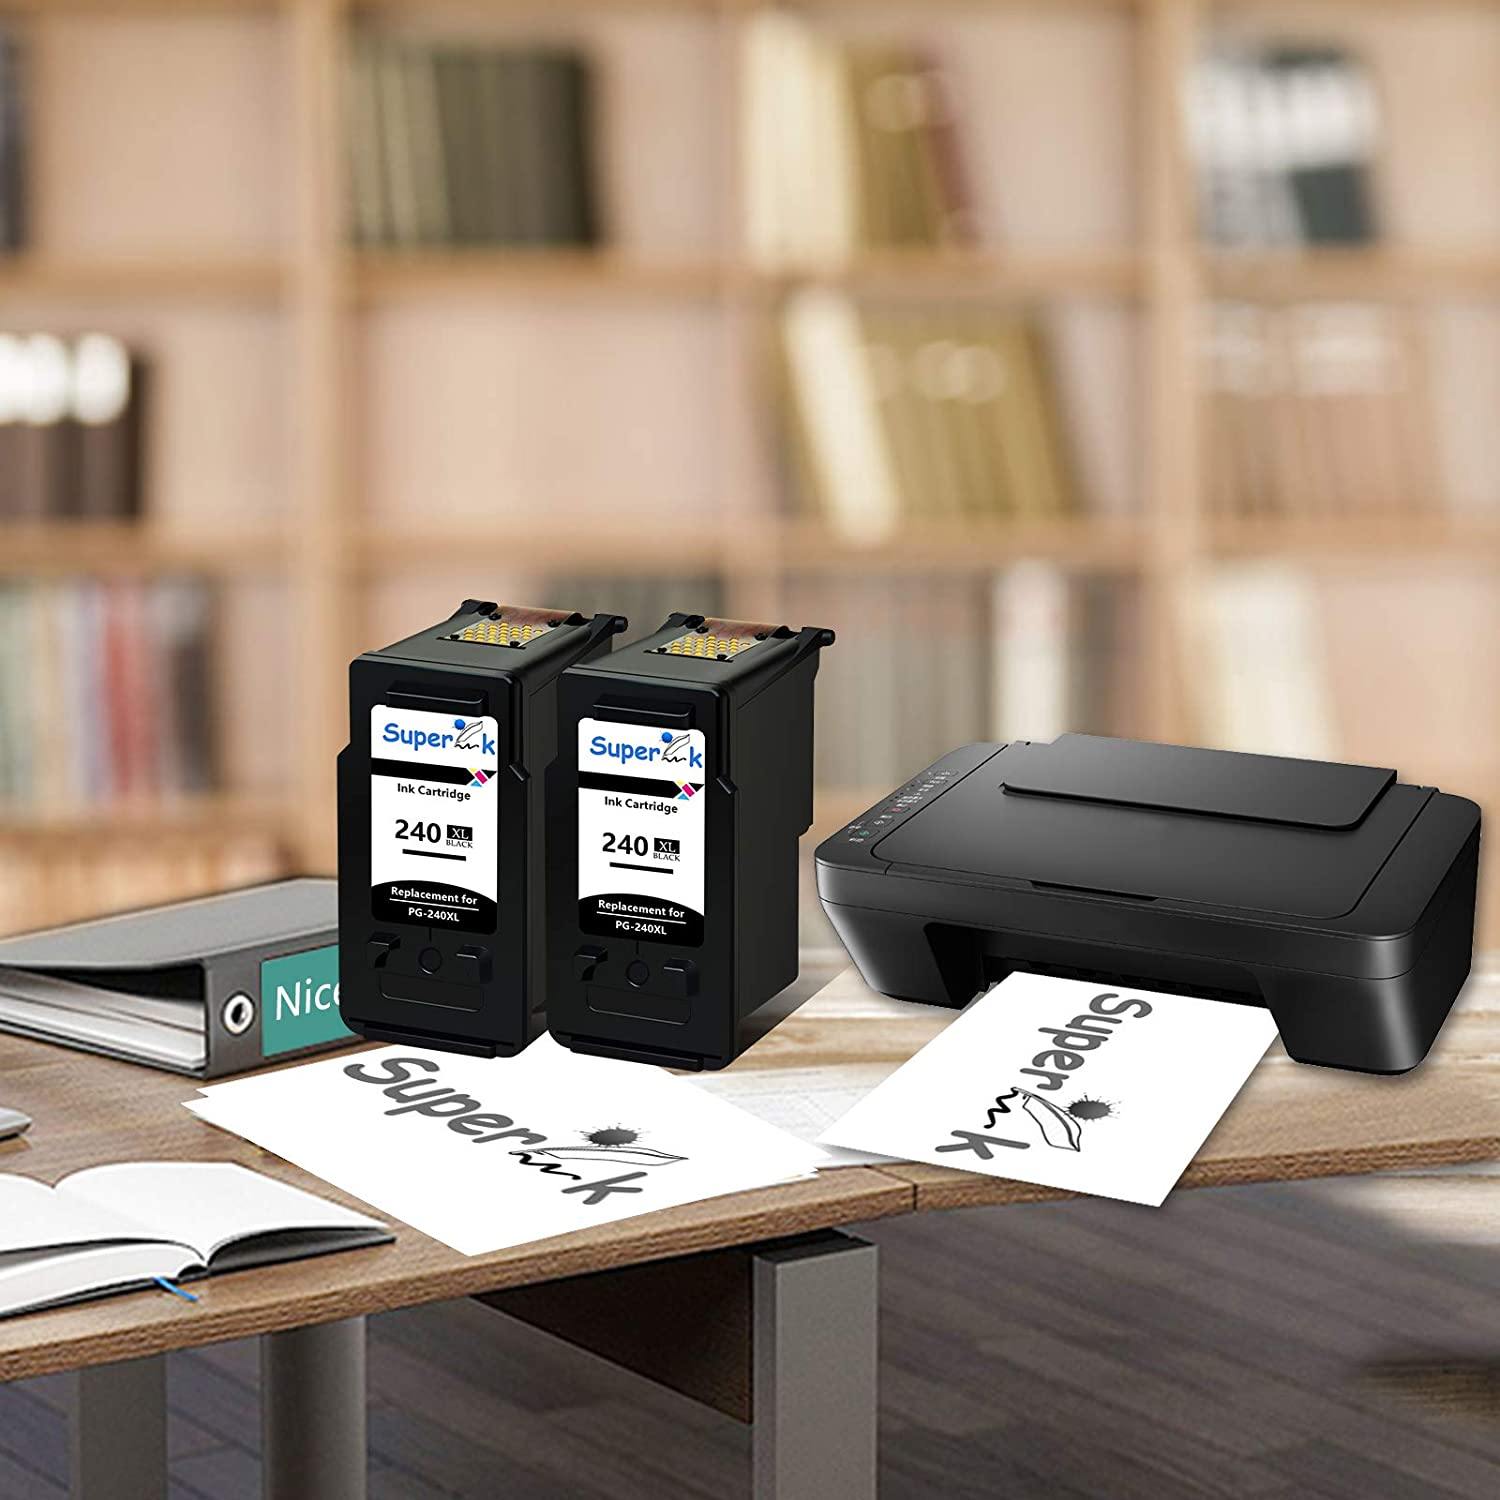 SuperInk High Yield Remanufactured PG-240XL 240XL Ink Cartridges 1 Black Compatible for Canon PIXMA MG3620 MG3520 MG2220 MG3220 MG3522 MX472 MX452 MX522 MX532 MX392 MX432 MX512 Printer